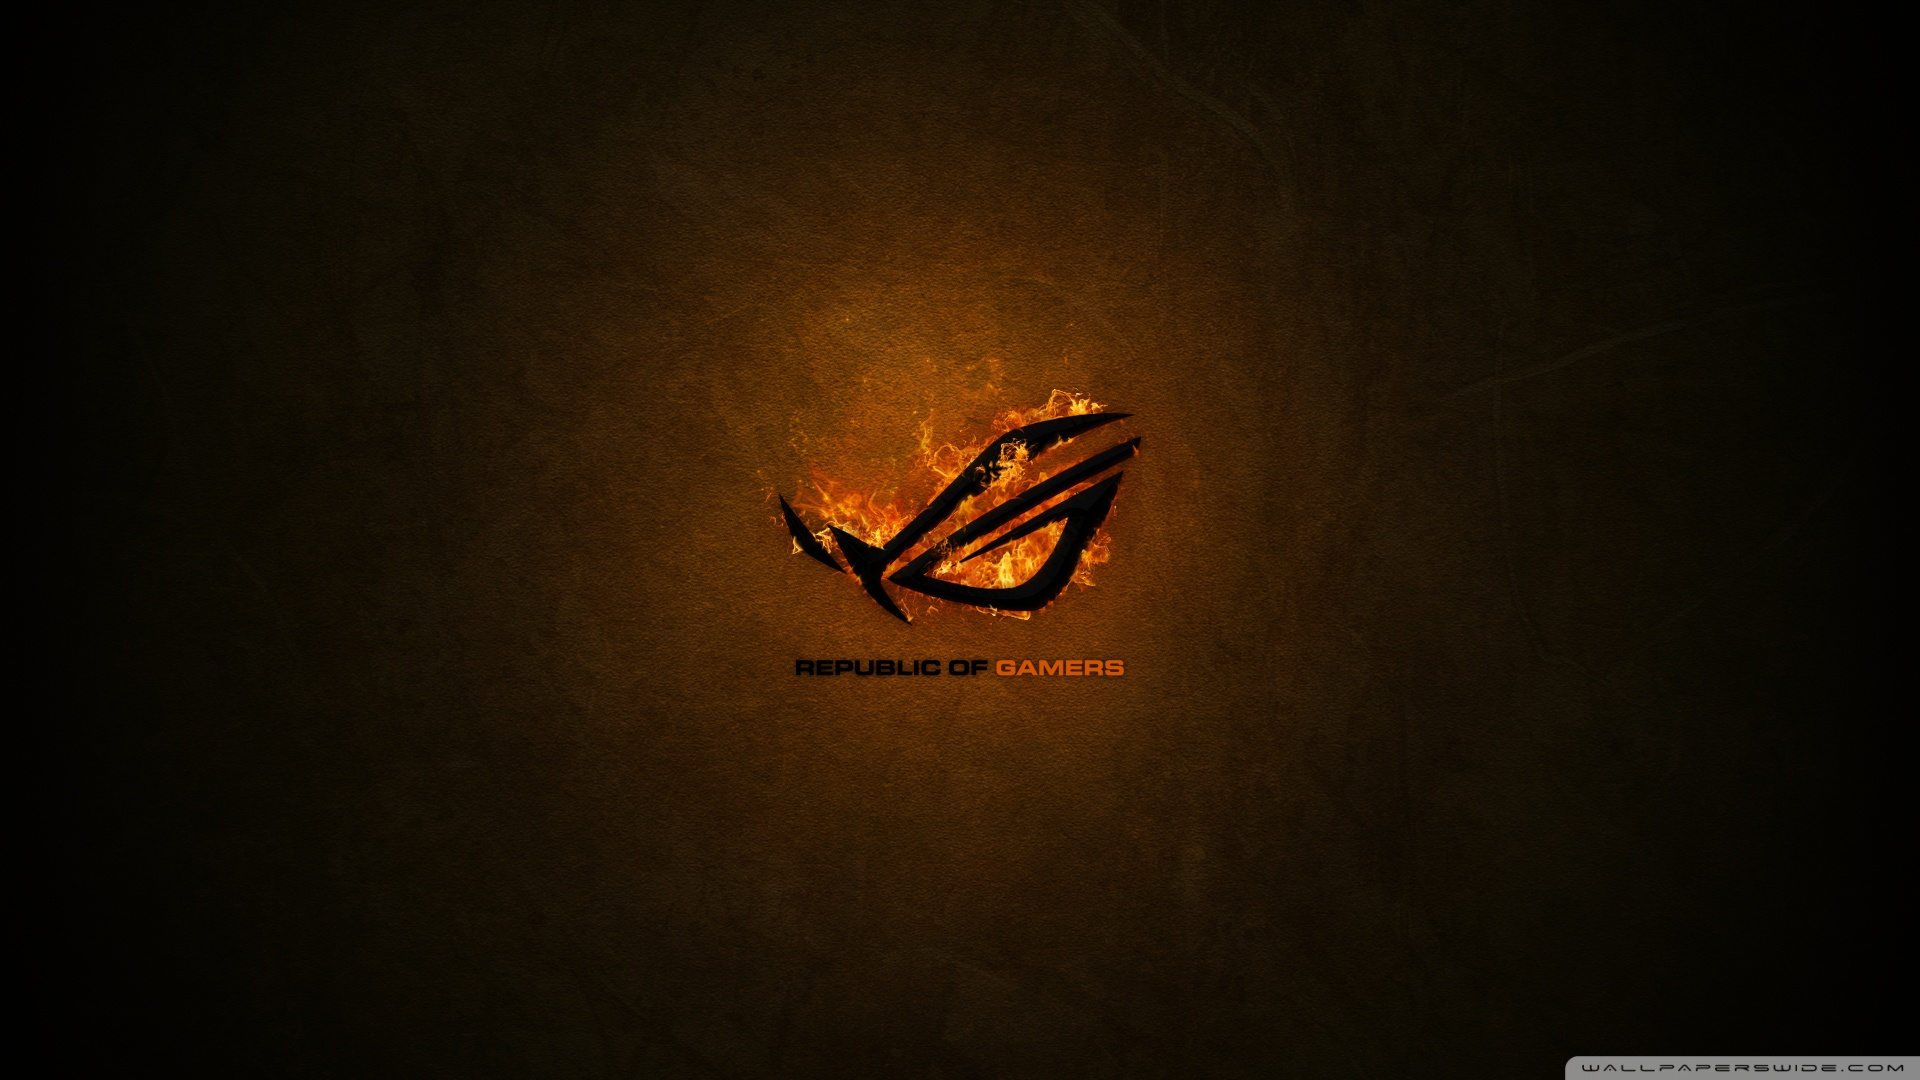 Asus Republic Of Gamers 2 Wallpaper 1920x1080 Asus Republic Of 1920x1080